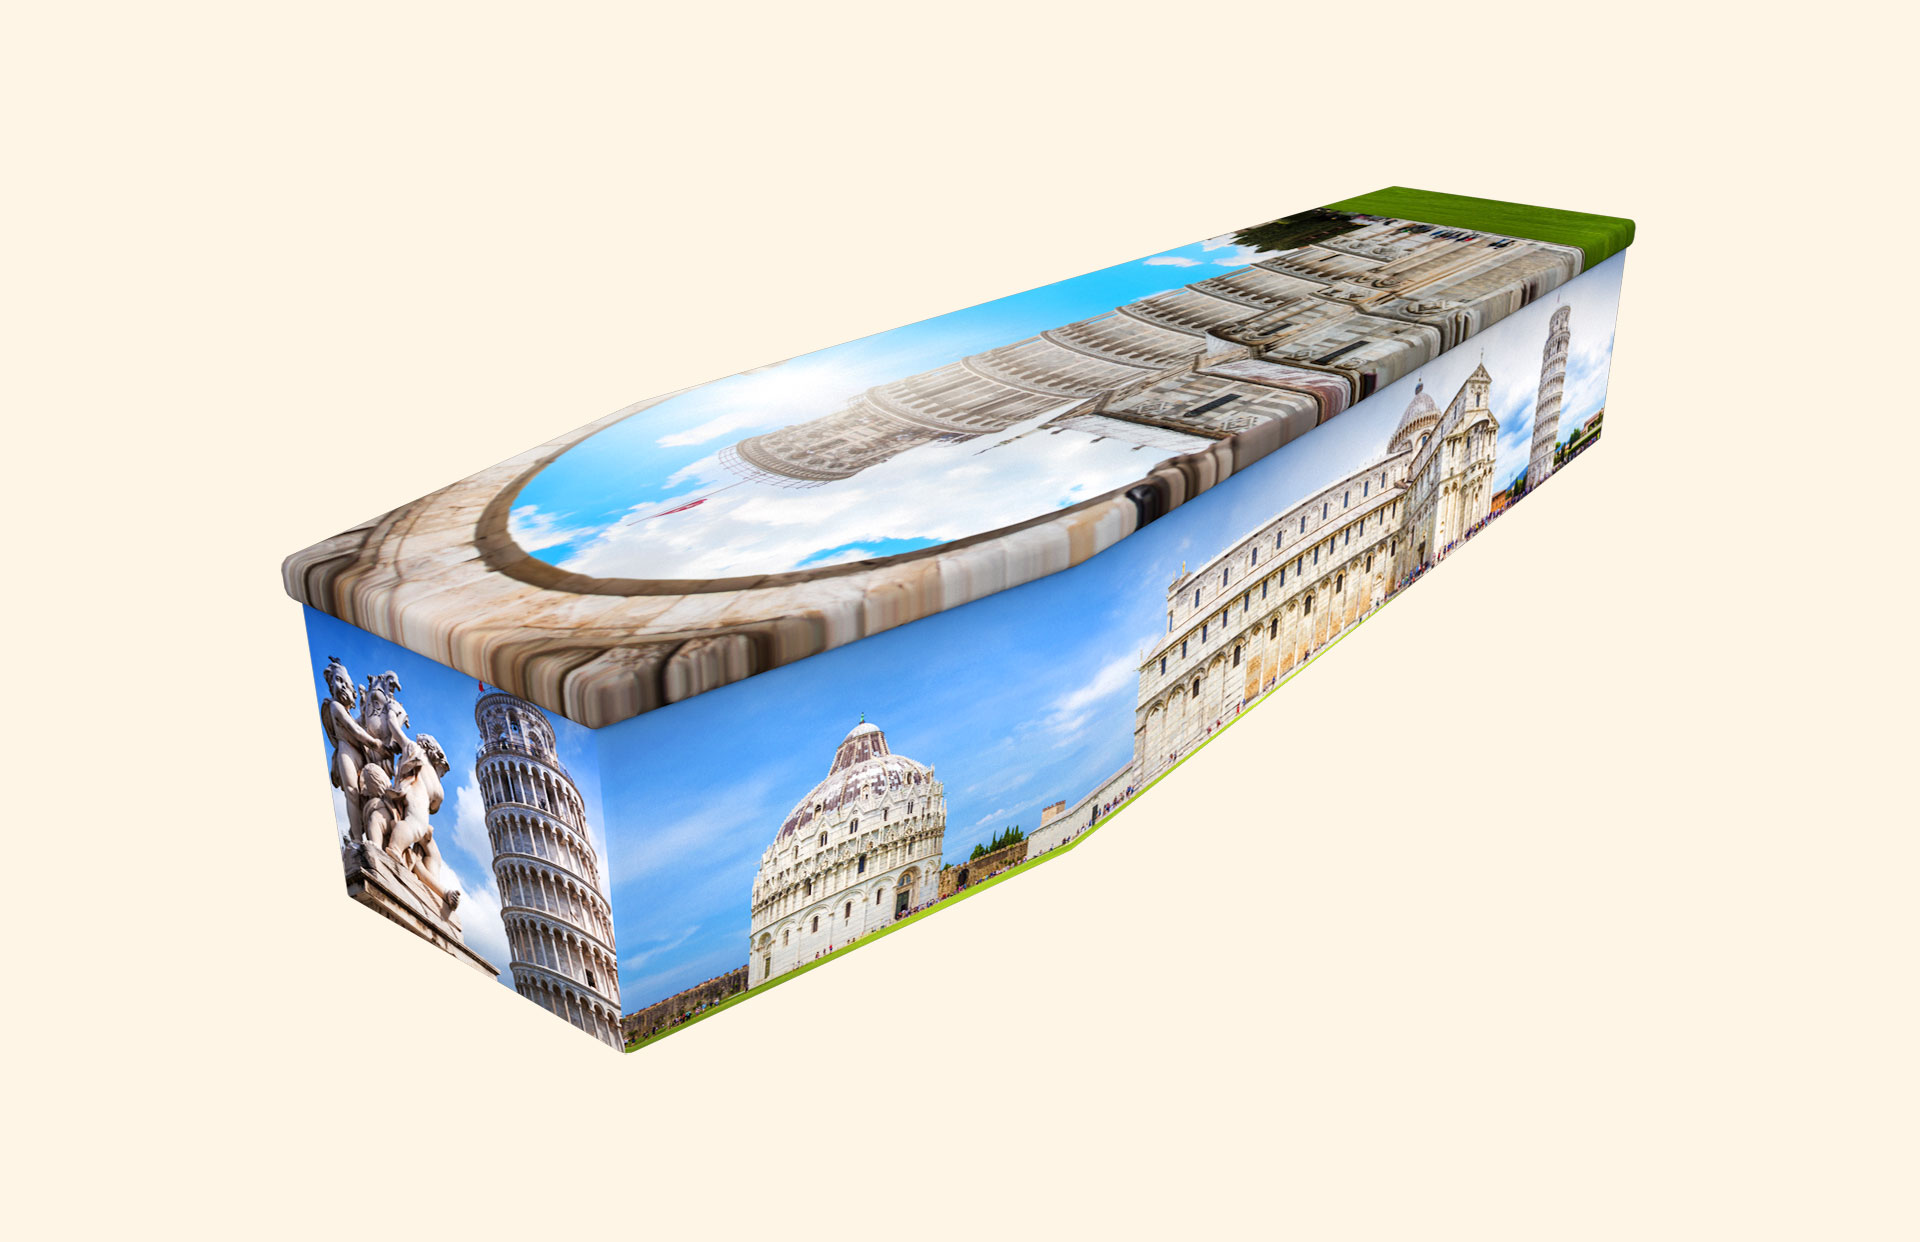 Leaning Tower of Pisa cardboard coffin